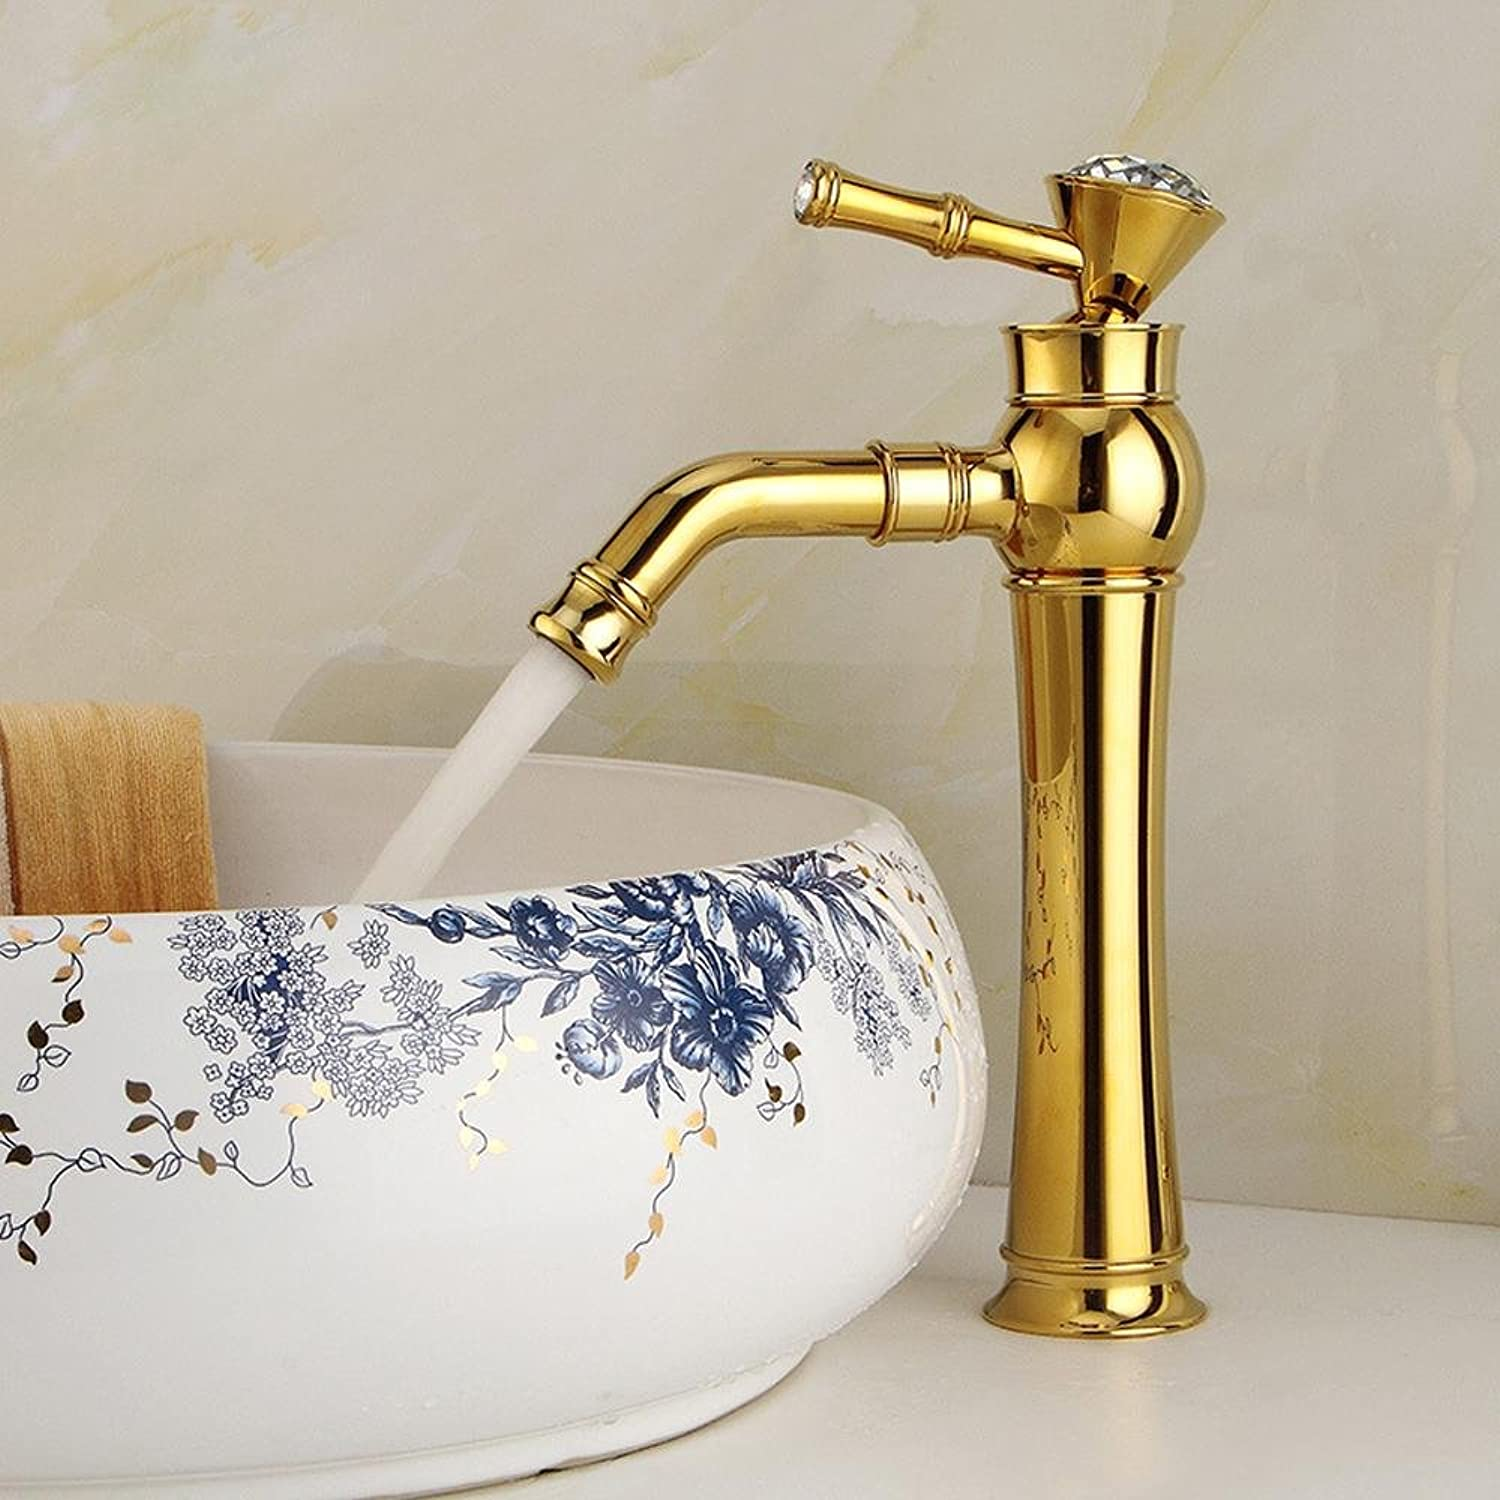 JIAHENGY Sink Mixer Faucet tap American creative modern minimalist fashion Brass Two Handles One HoleBasinBlack,oil Rubbed Bronze Toilet Kitchen bathroom